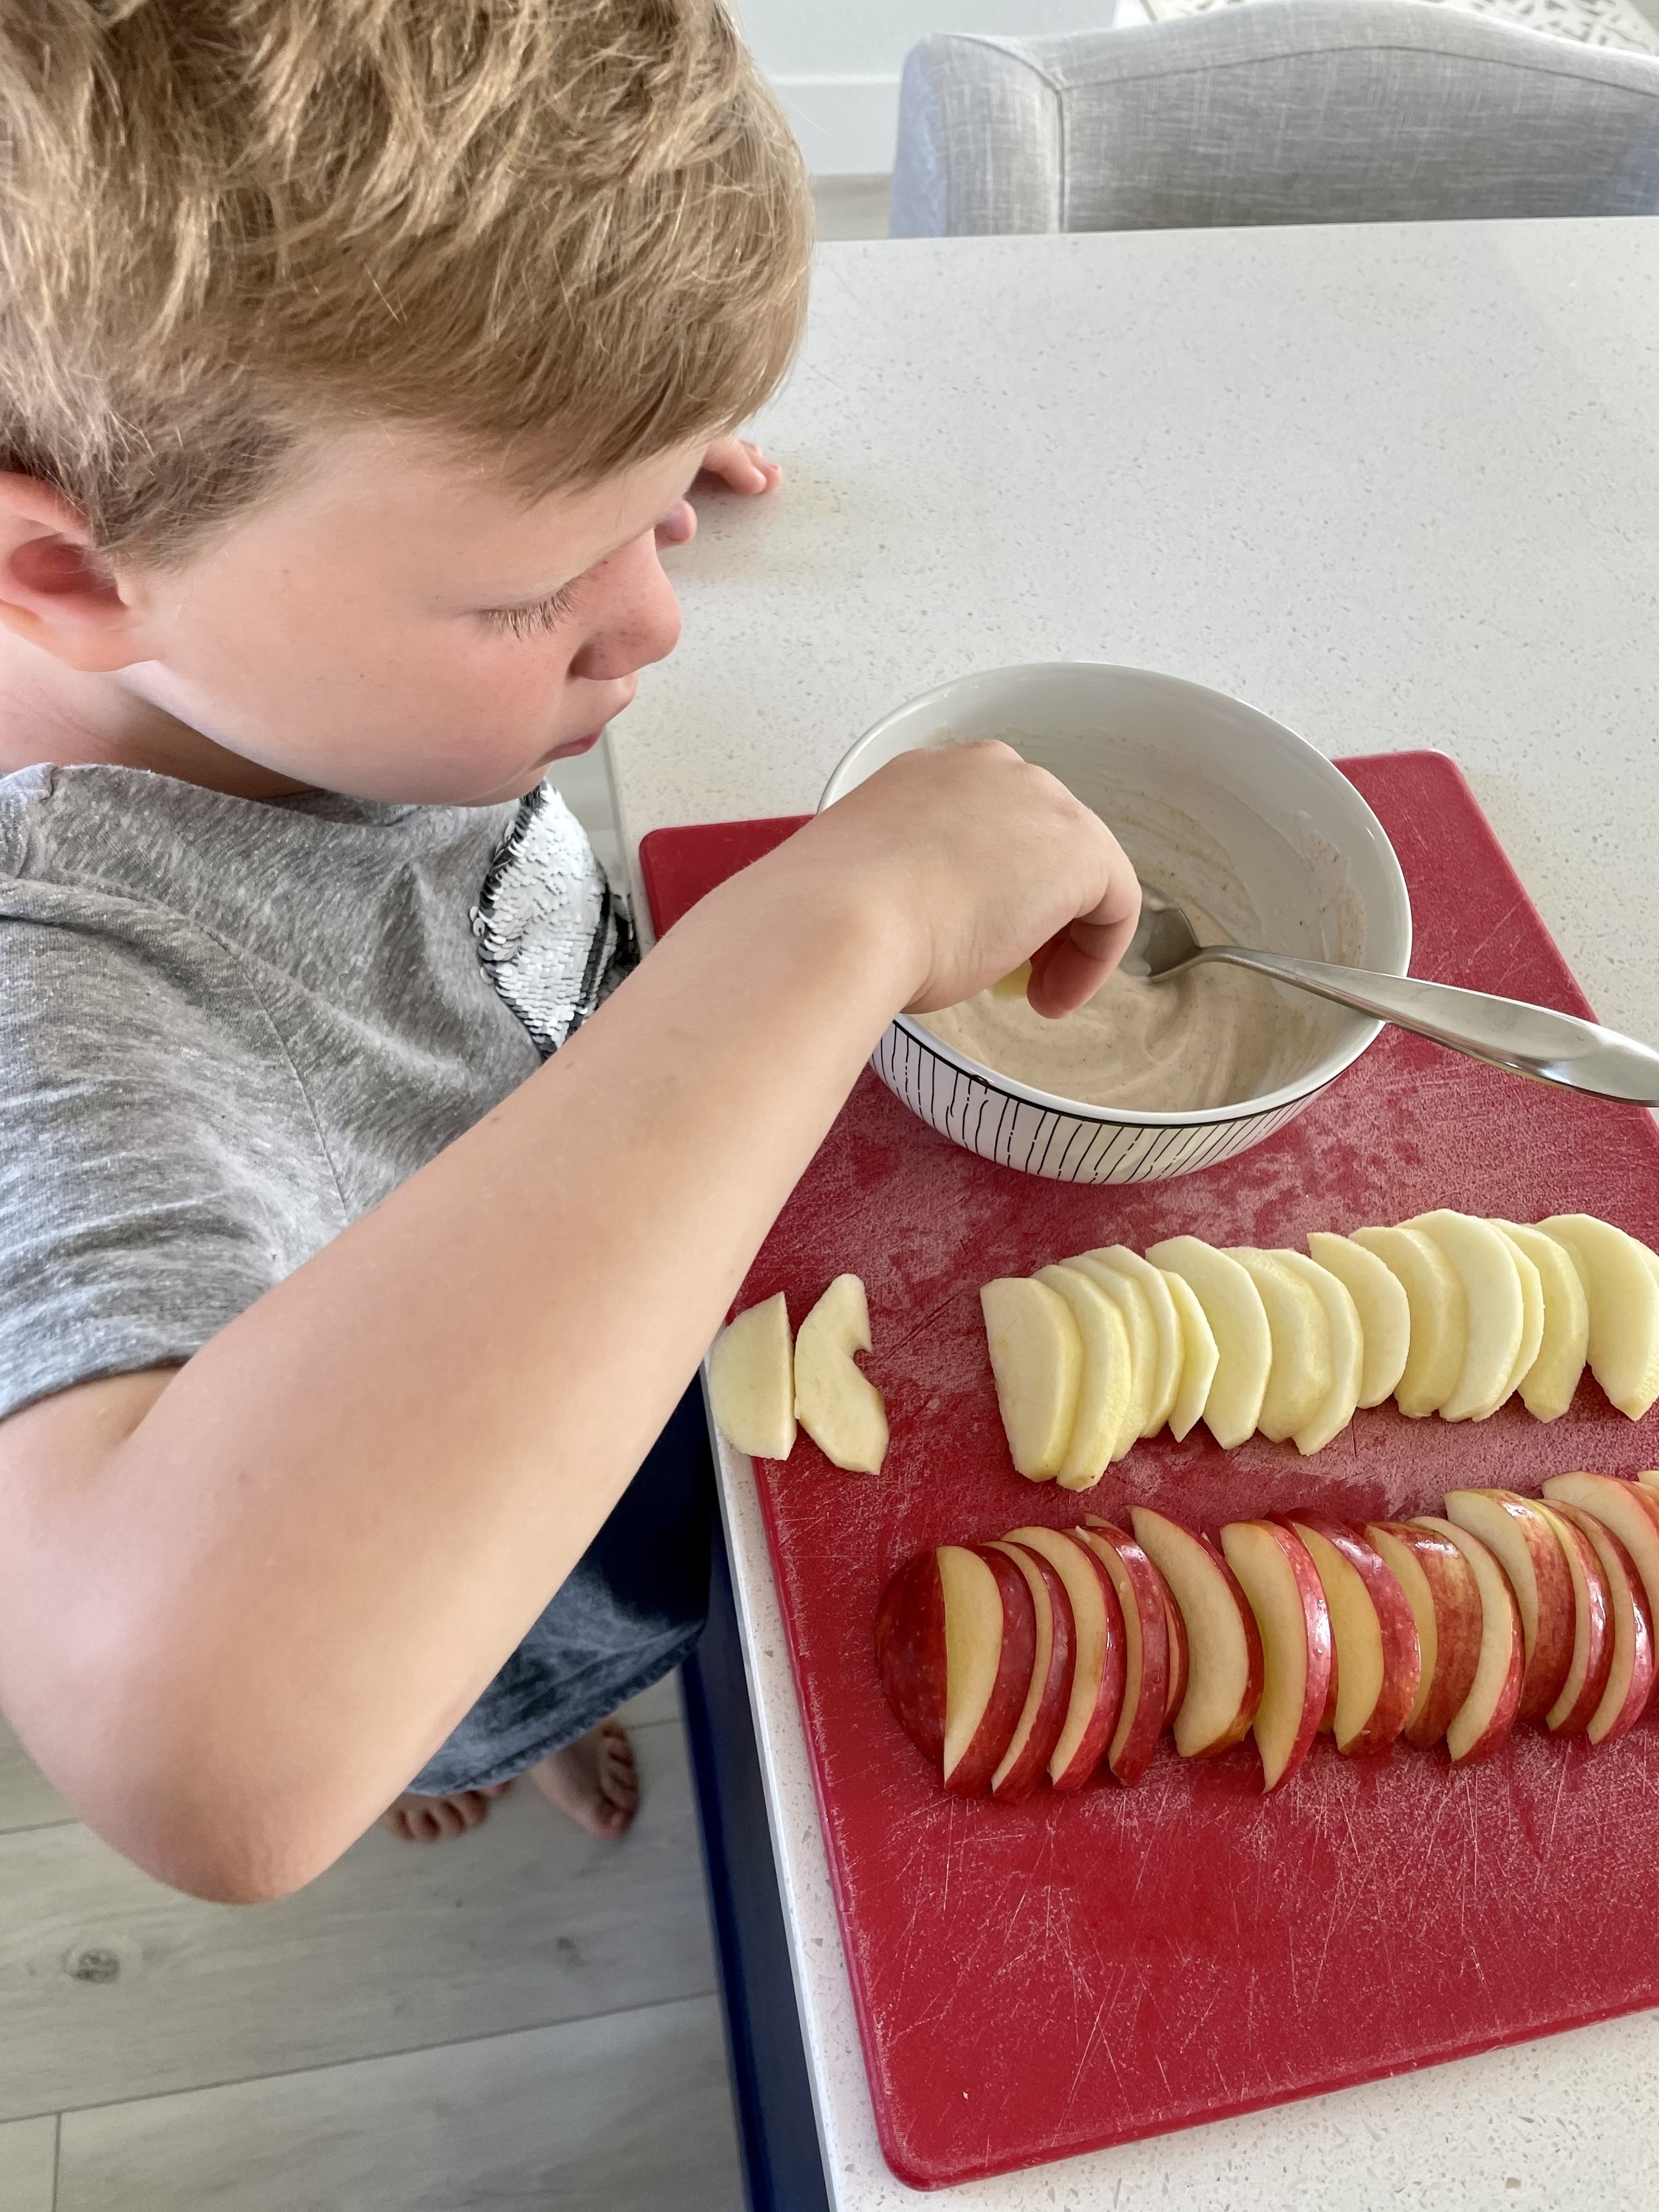 The author's oldest kid enjoying apple dippers